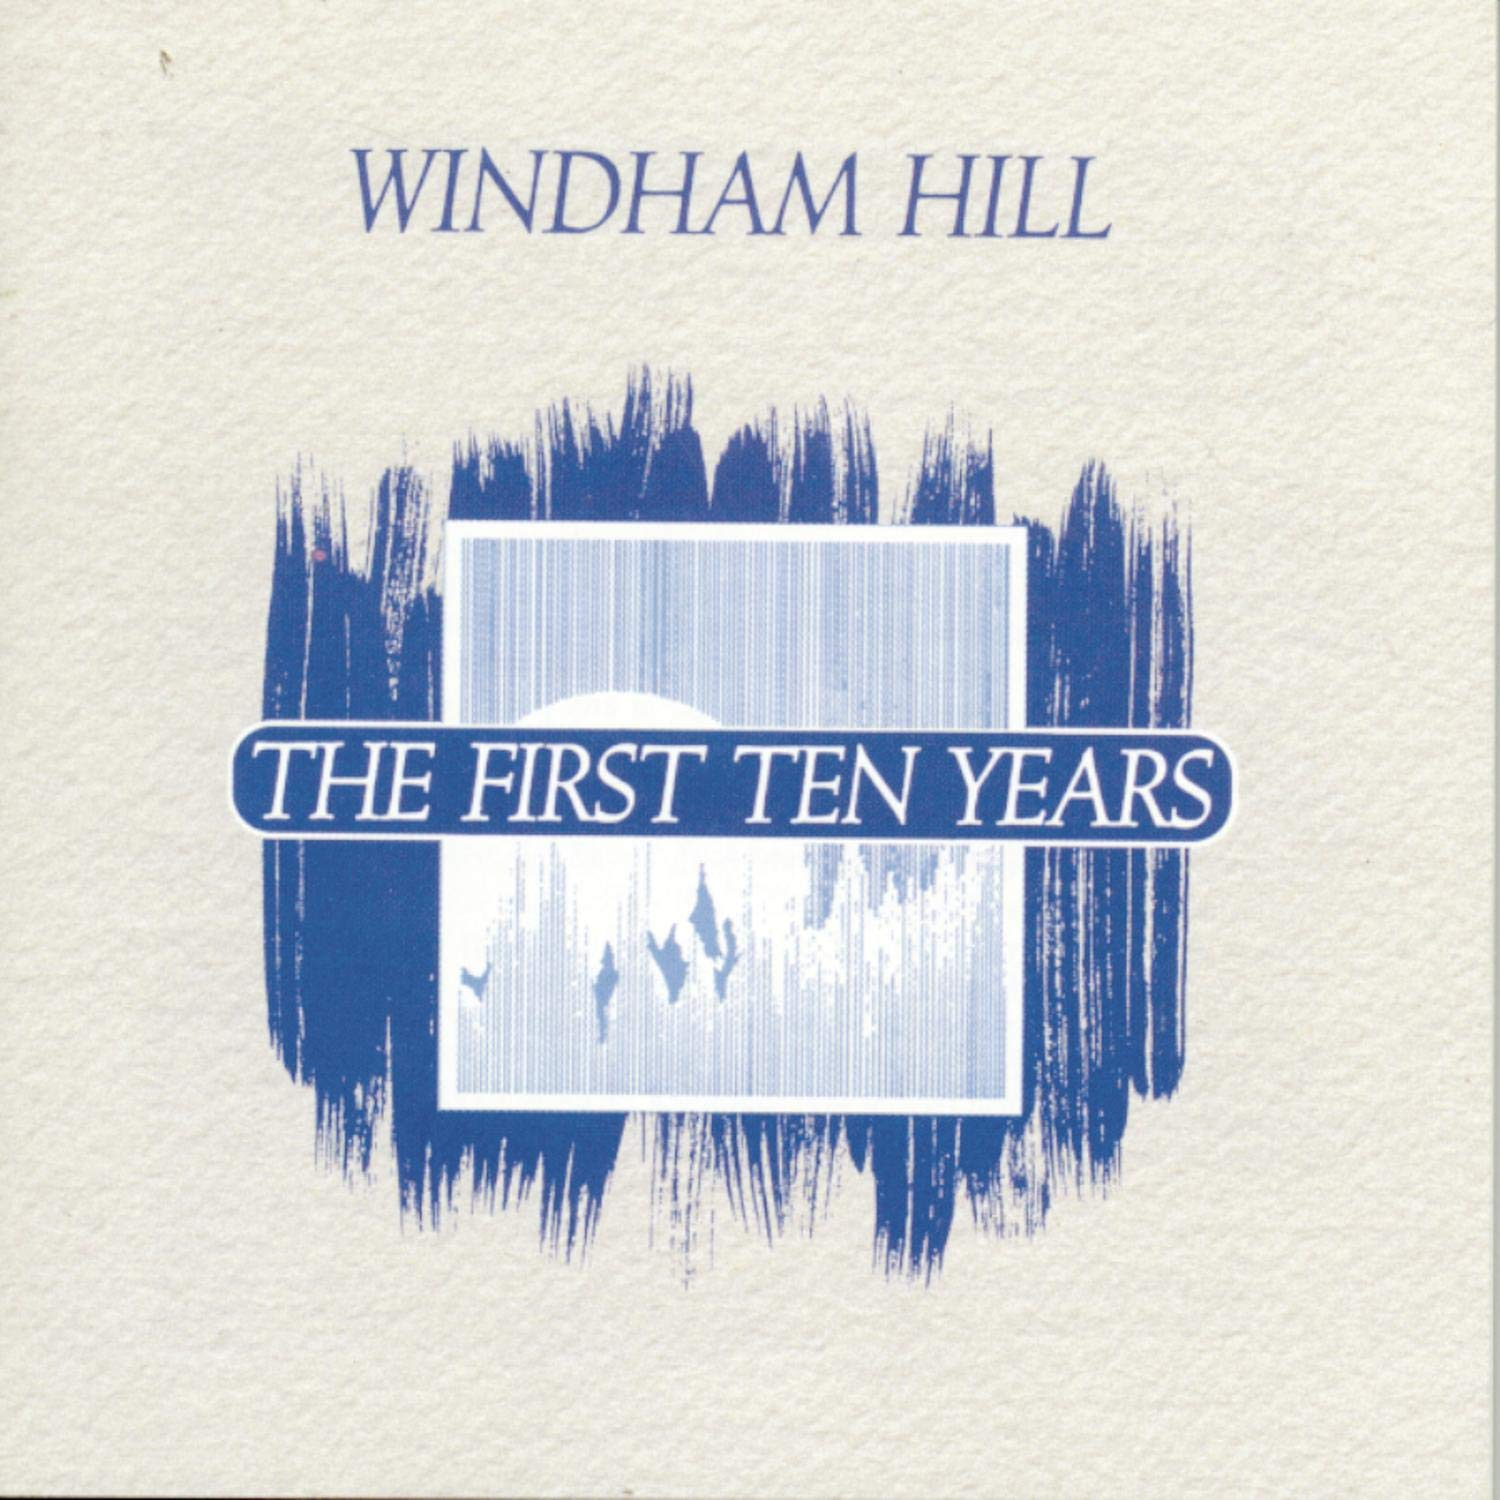 Windham Hill: The First Ten Years by Windham Hill Records